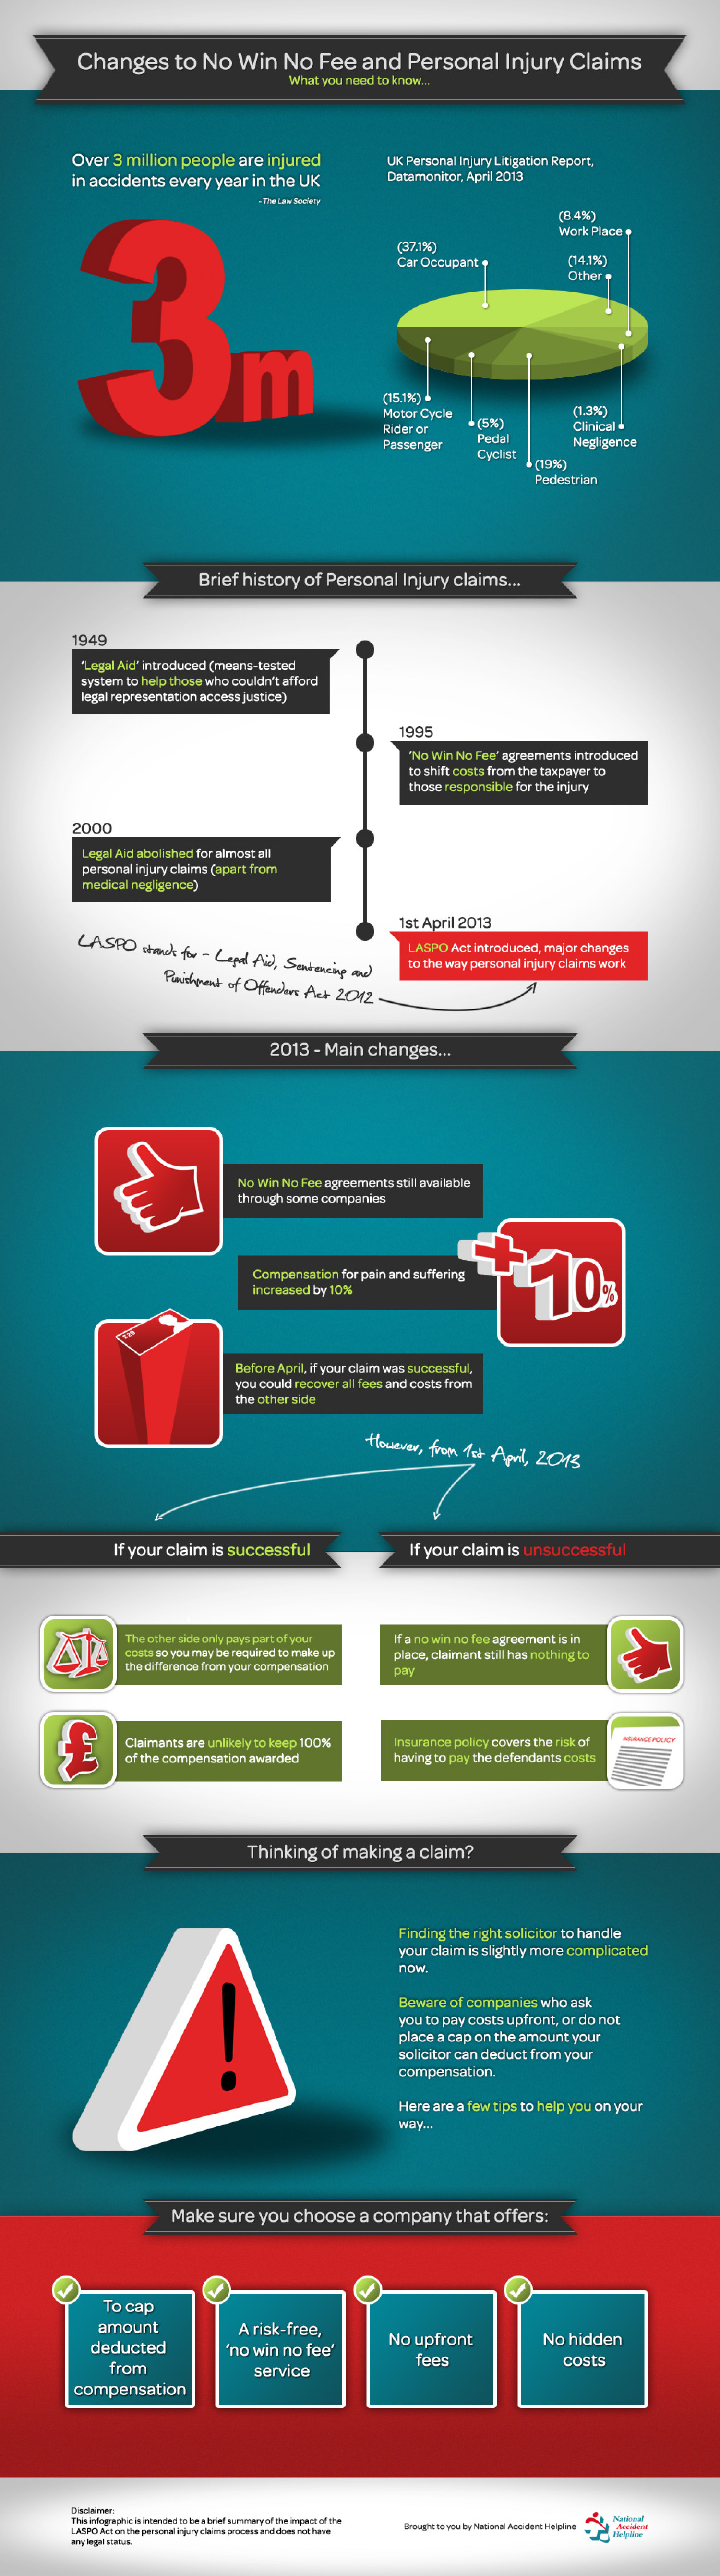 Changes to no win no fee and personal injury claims Infographic